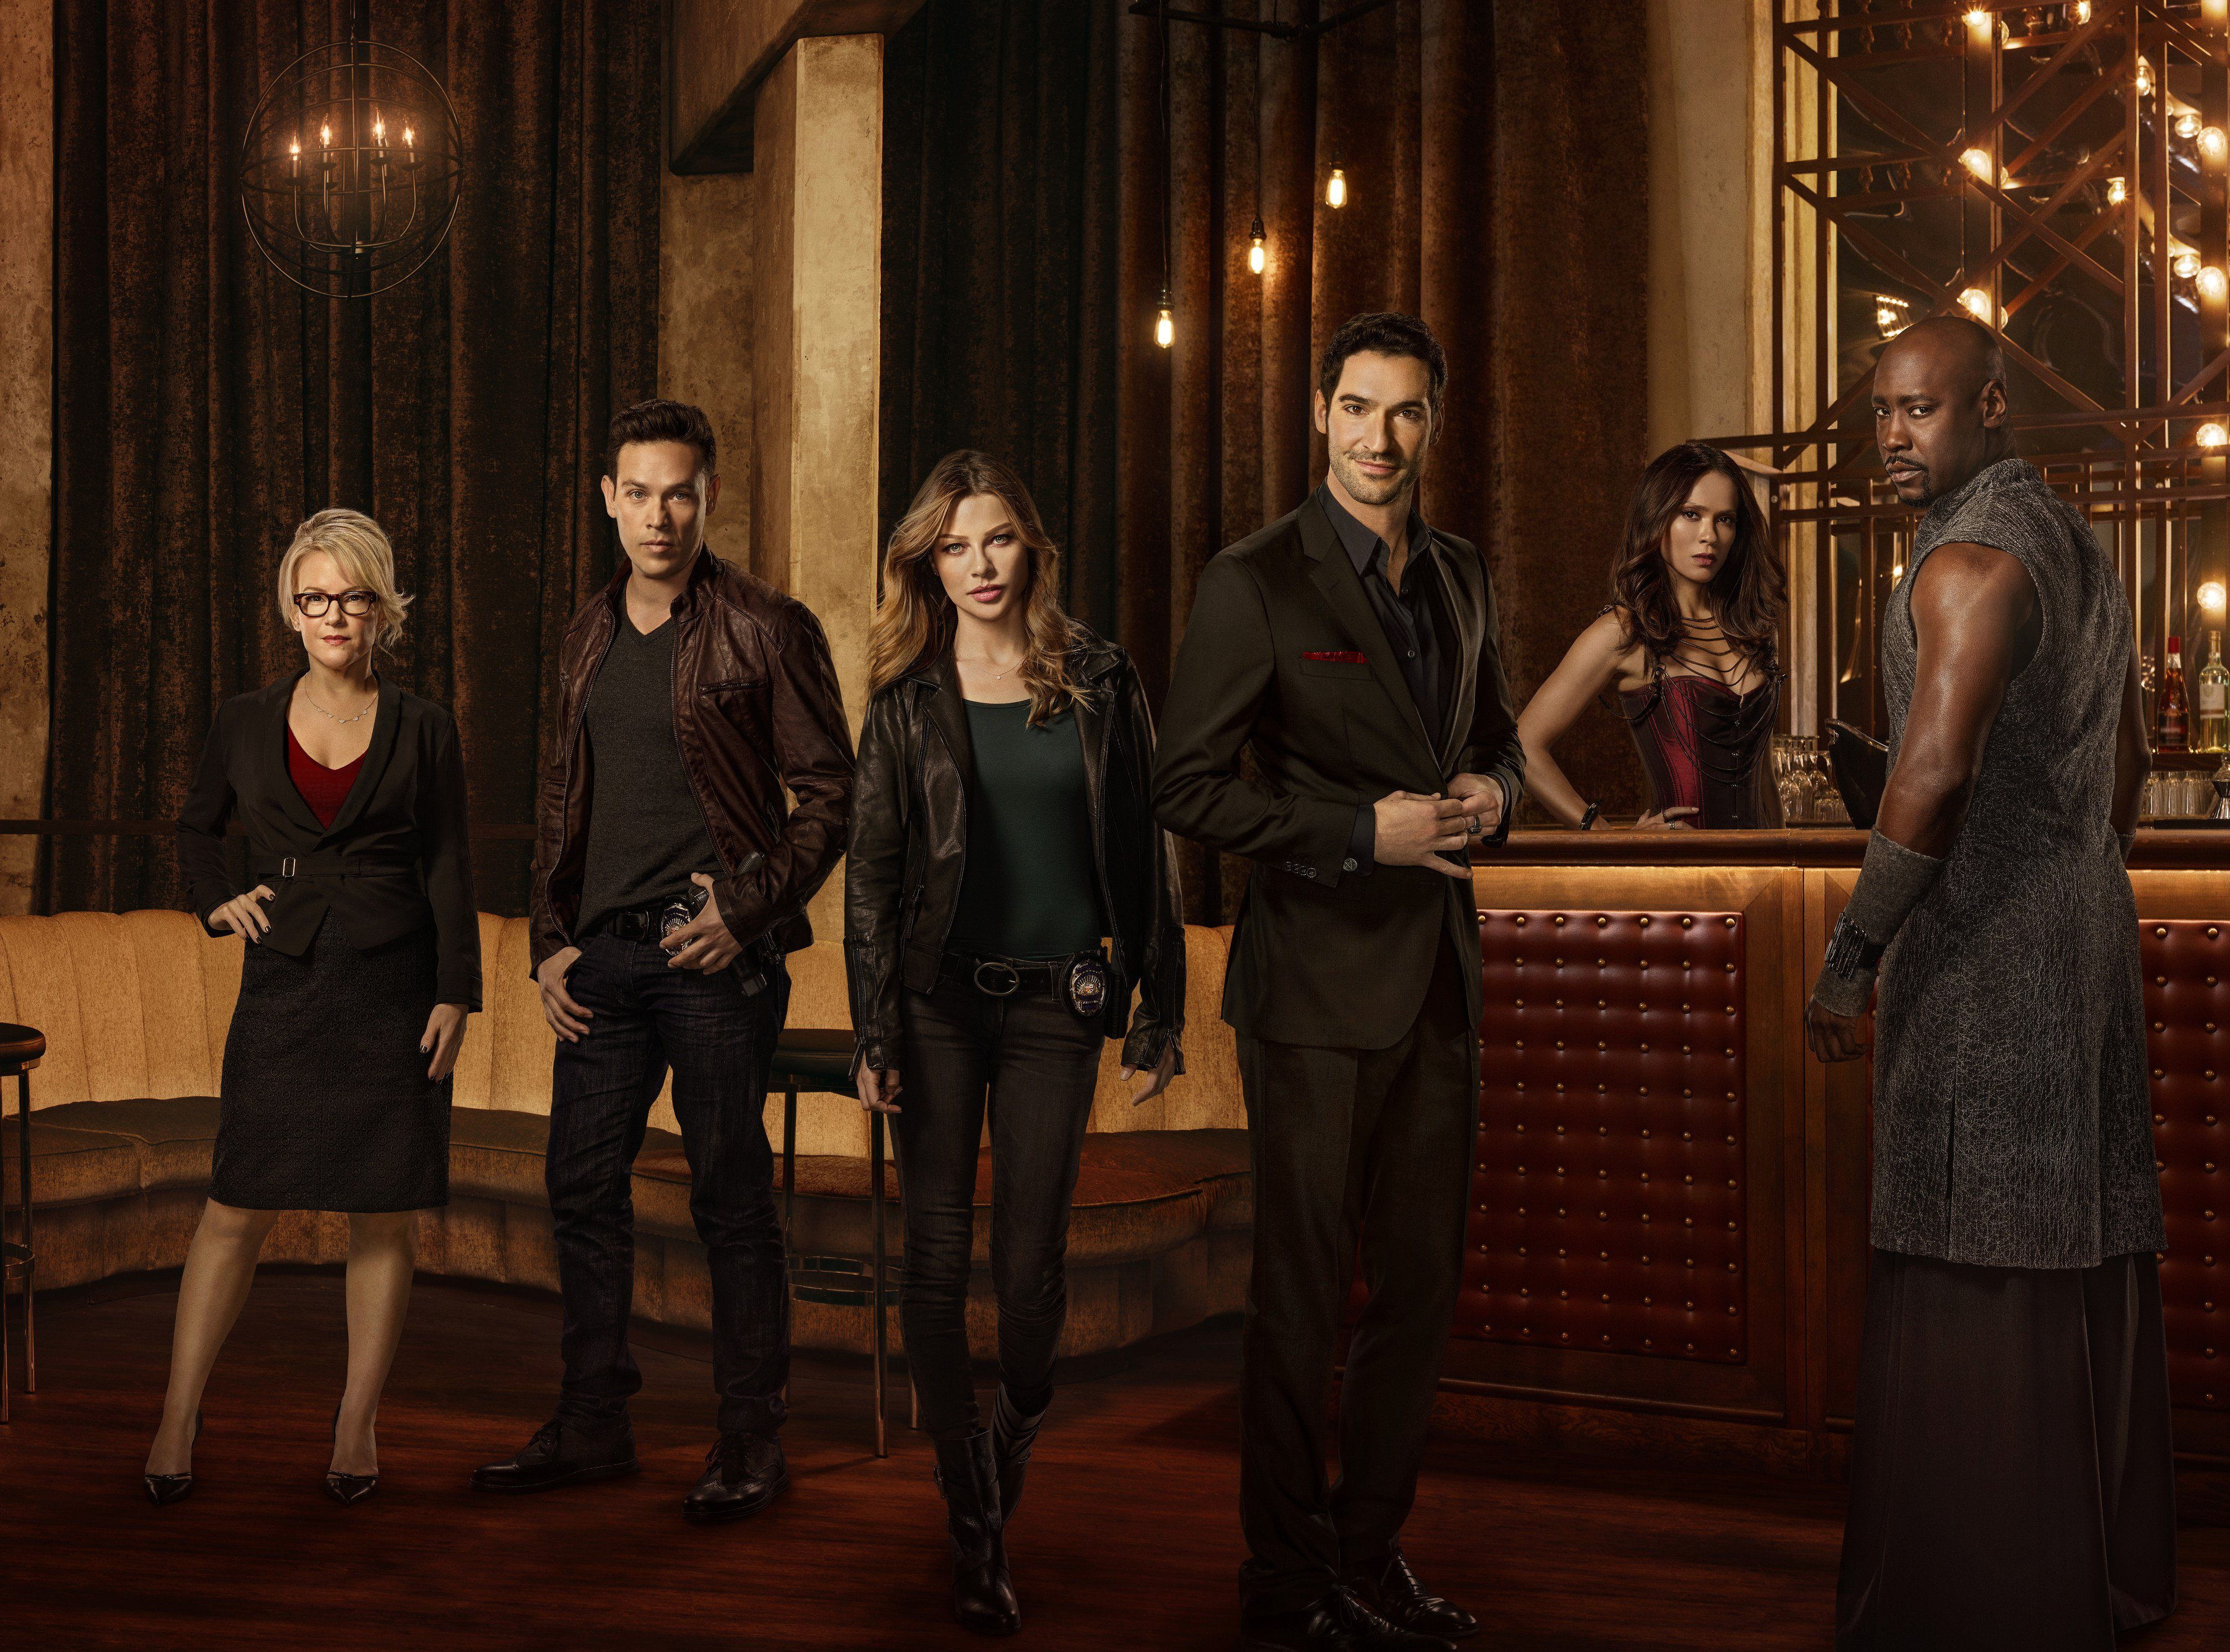 lucifer tv show hd tv shows 4k wallpapers images